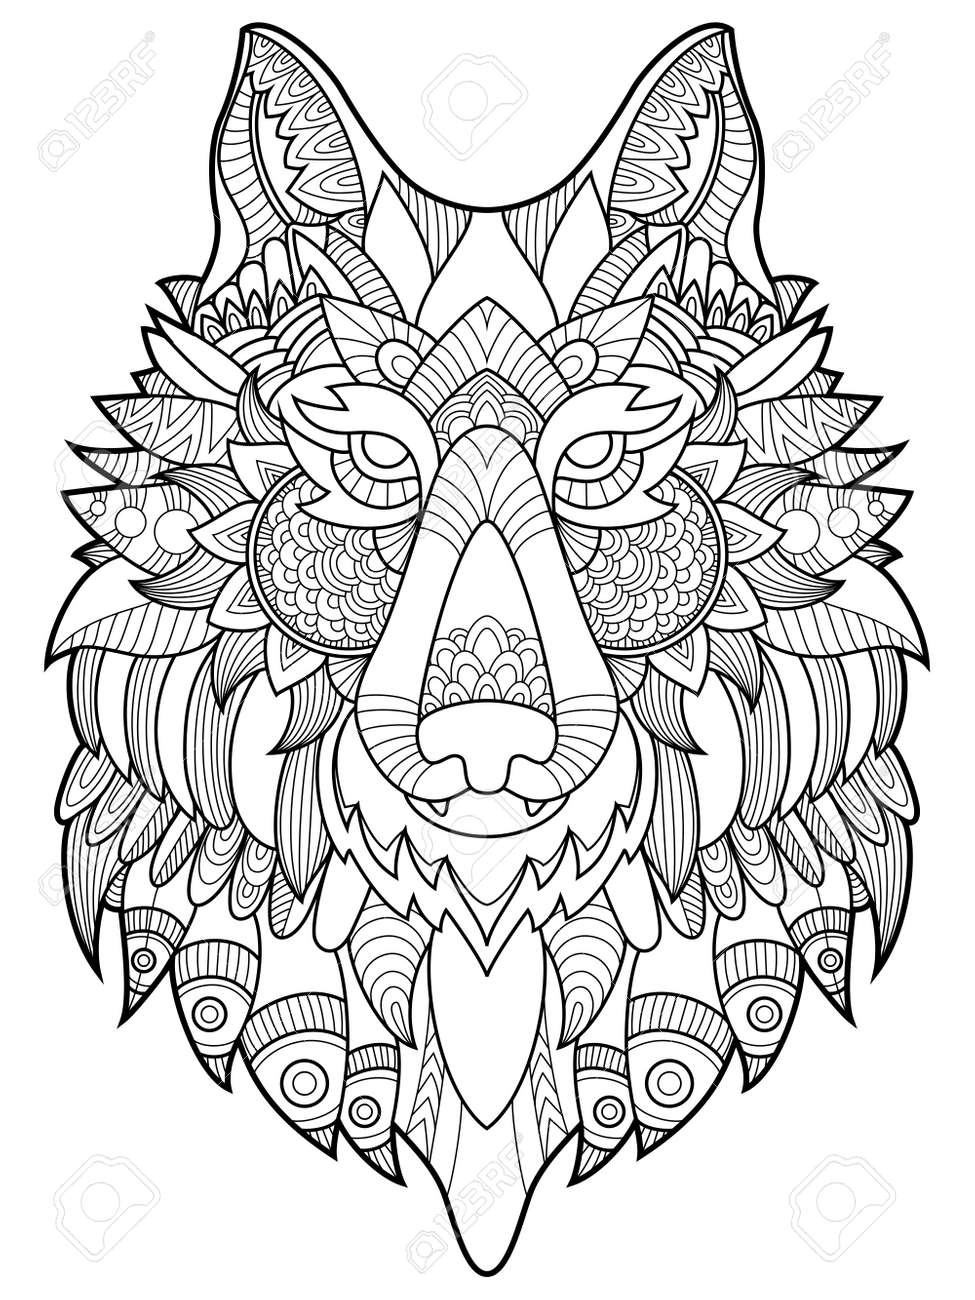 Wolf Coloring Book For Adults Vector Illustration. Anti-stress ...